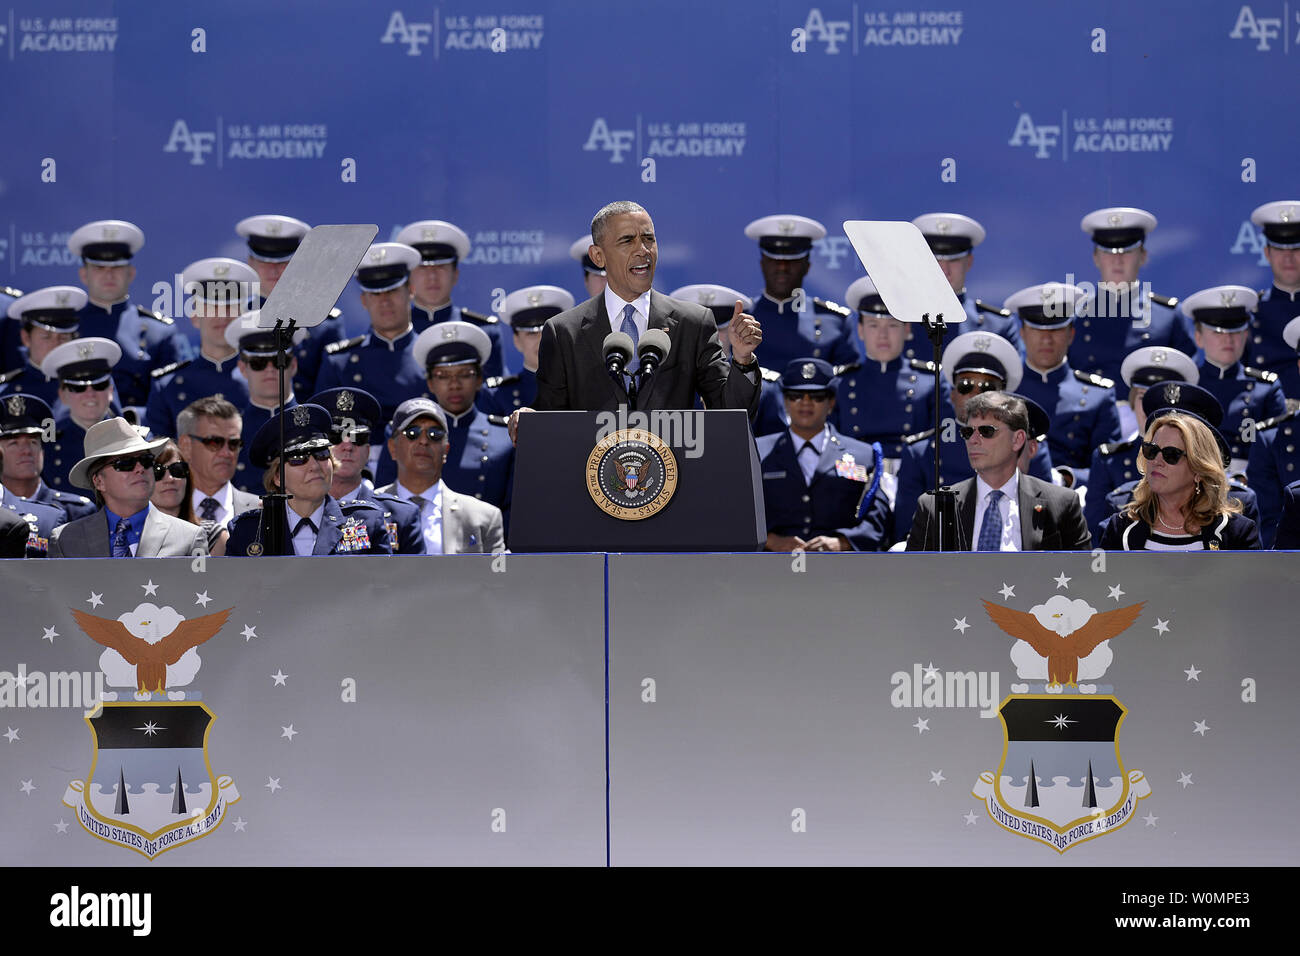 President Barack Obama delivers the graduation address to the U.S. Air Force Academy Class of 2016 at Falcon Stadium in Colorado Springs, Colo., on June 2, 2016. 821 cadets graduated to become the newest 2d Lieutenants in the Air Force. Photo by Mike Kaplan/U.S. Air Force/UPI Stock Photo